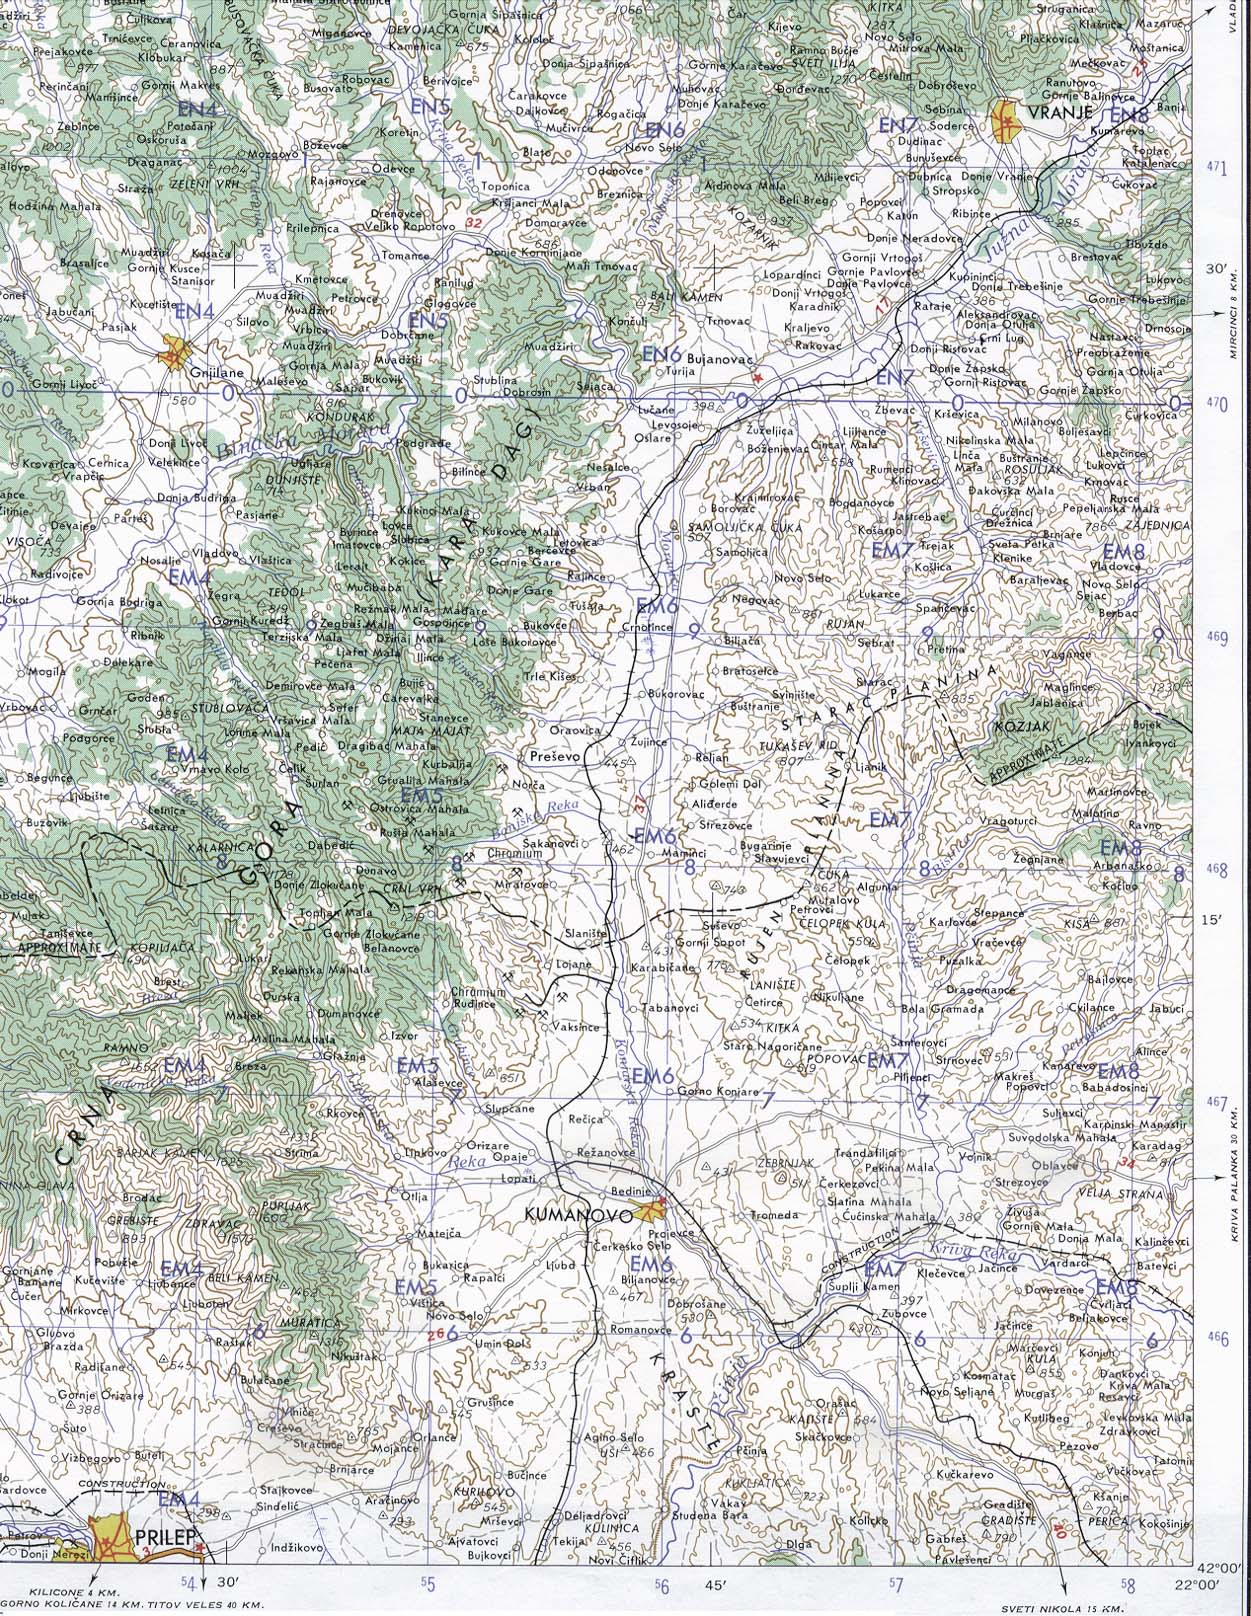 Kumanovo / Prilep Area Topographic Map, Macedonia 1959